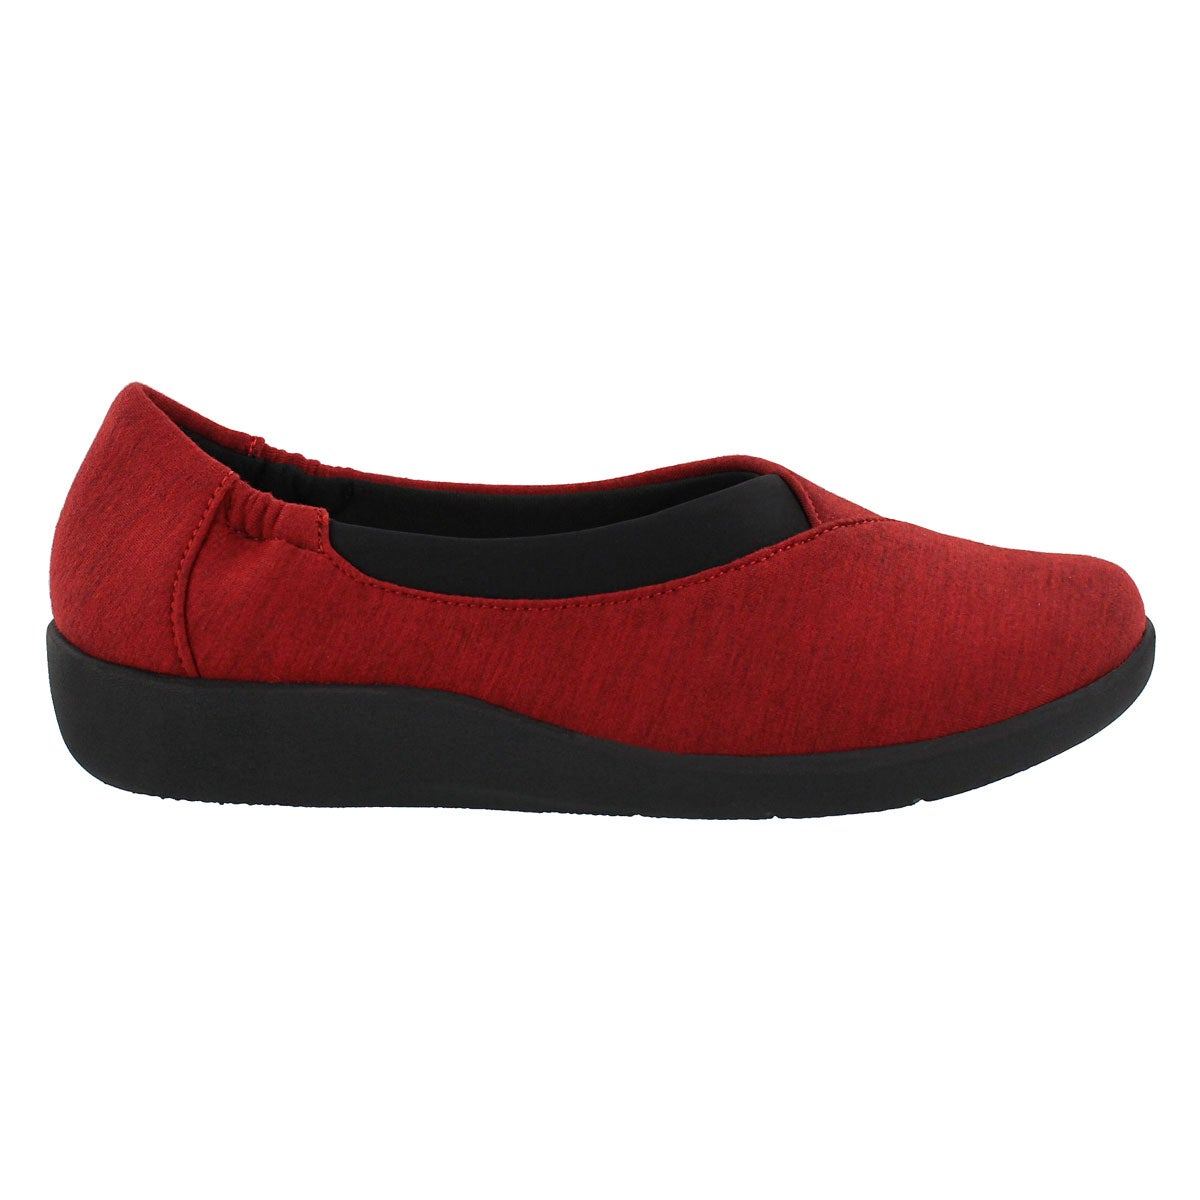 Lds Sillian Jetay red casual slip on